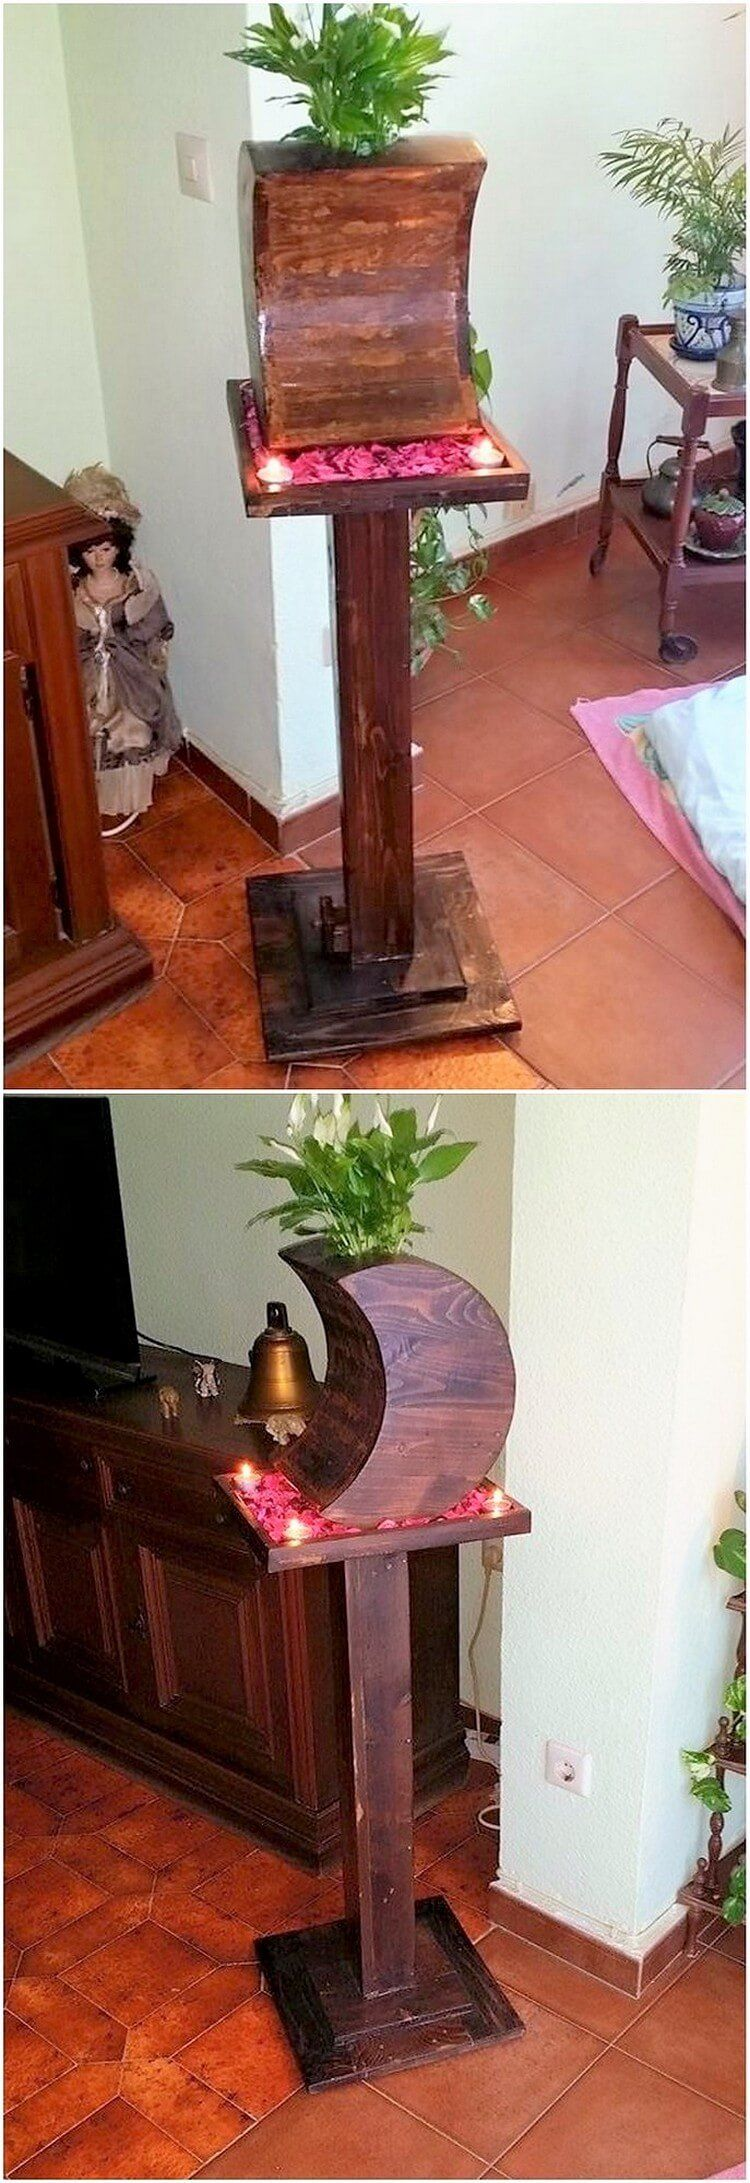 Awesome Smart Creations With Old Pallets